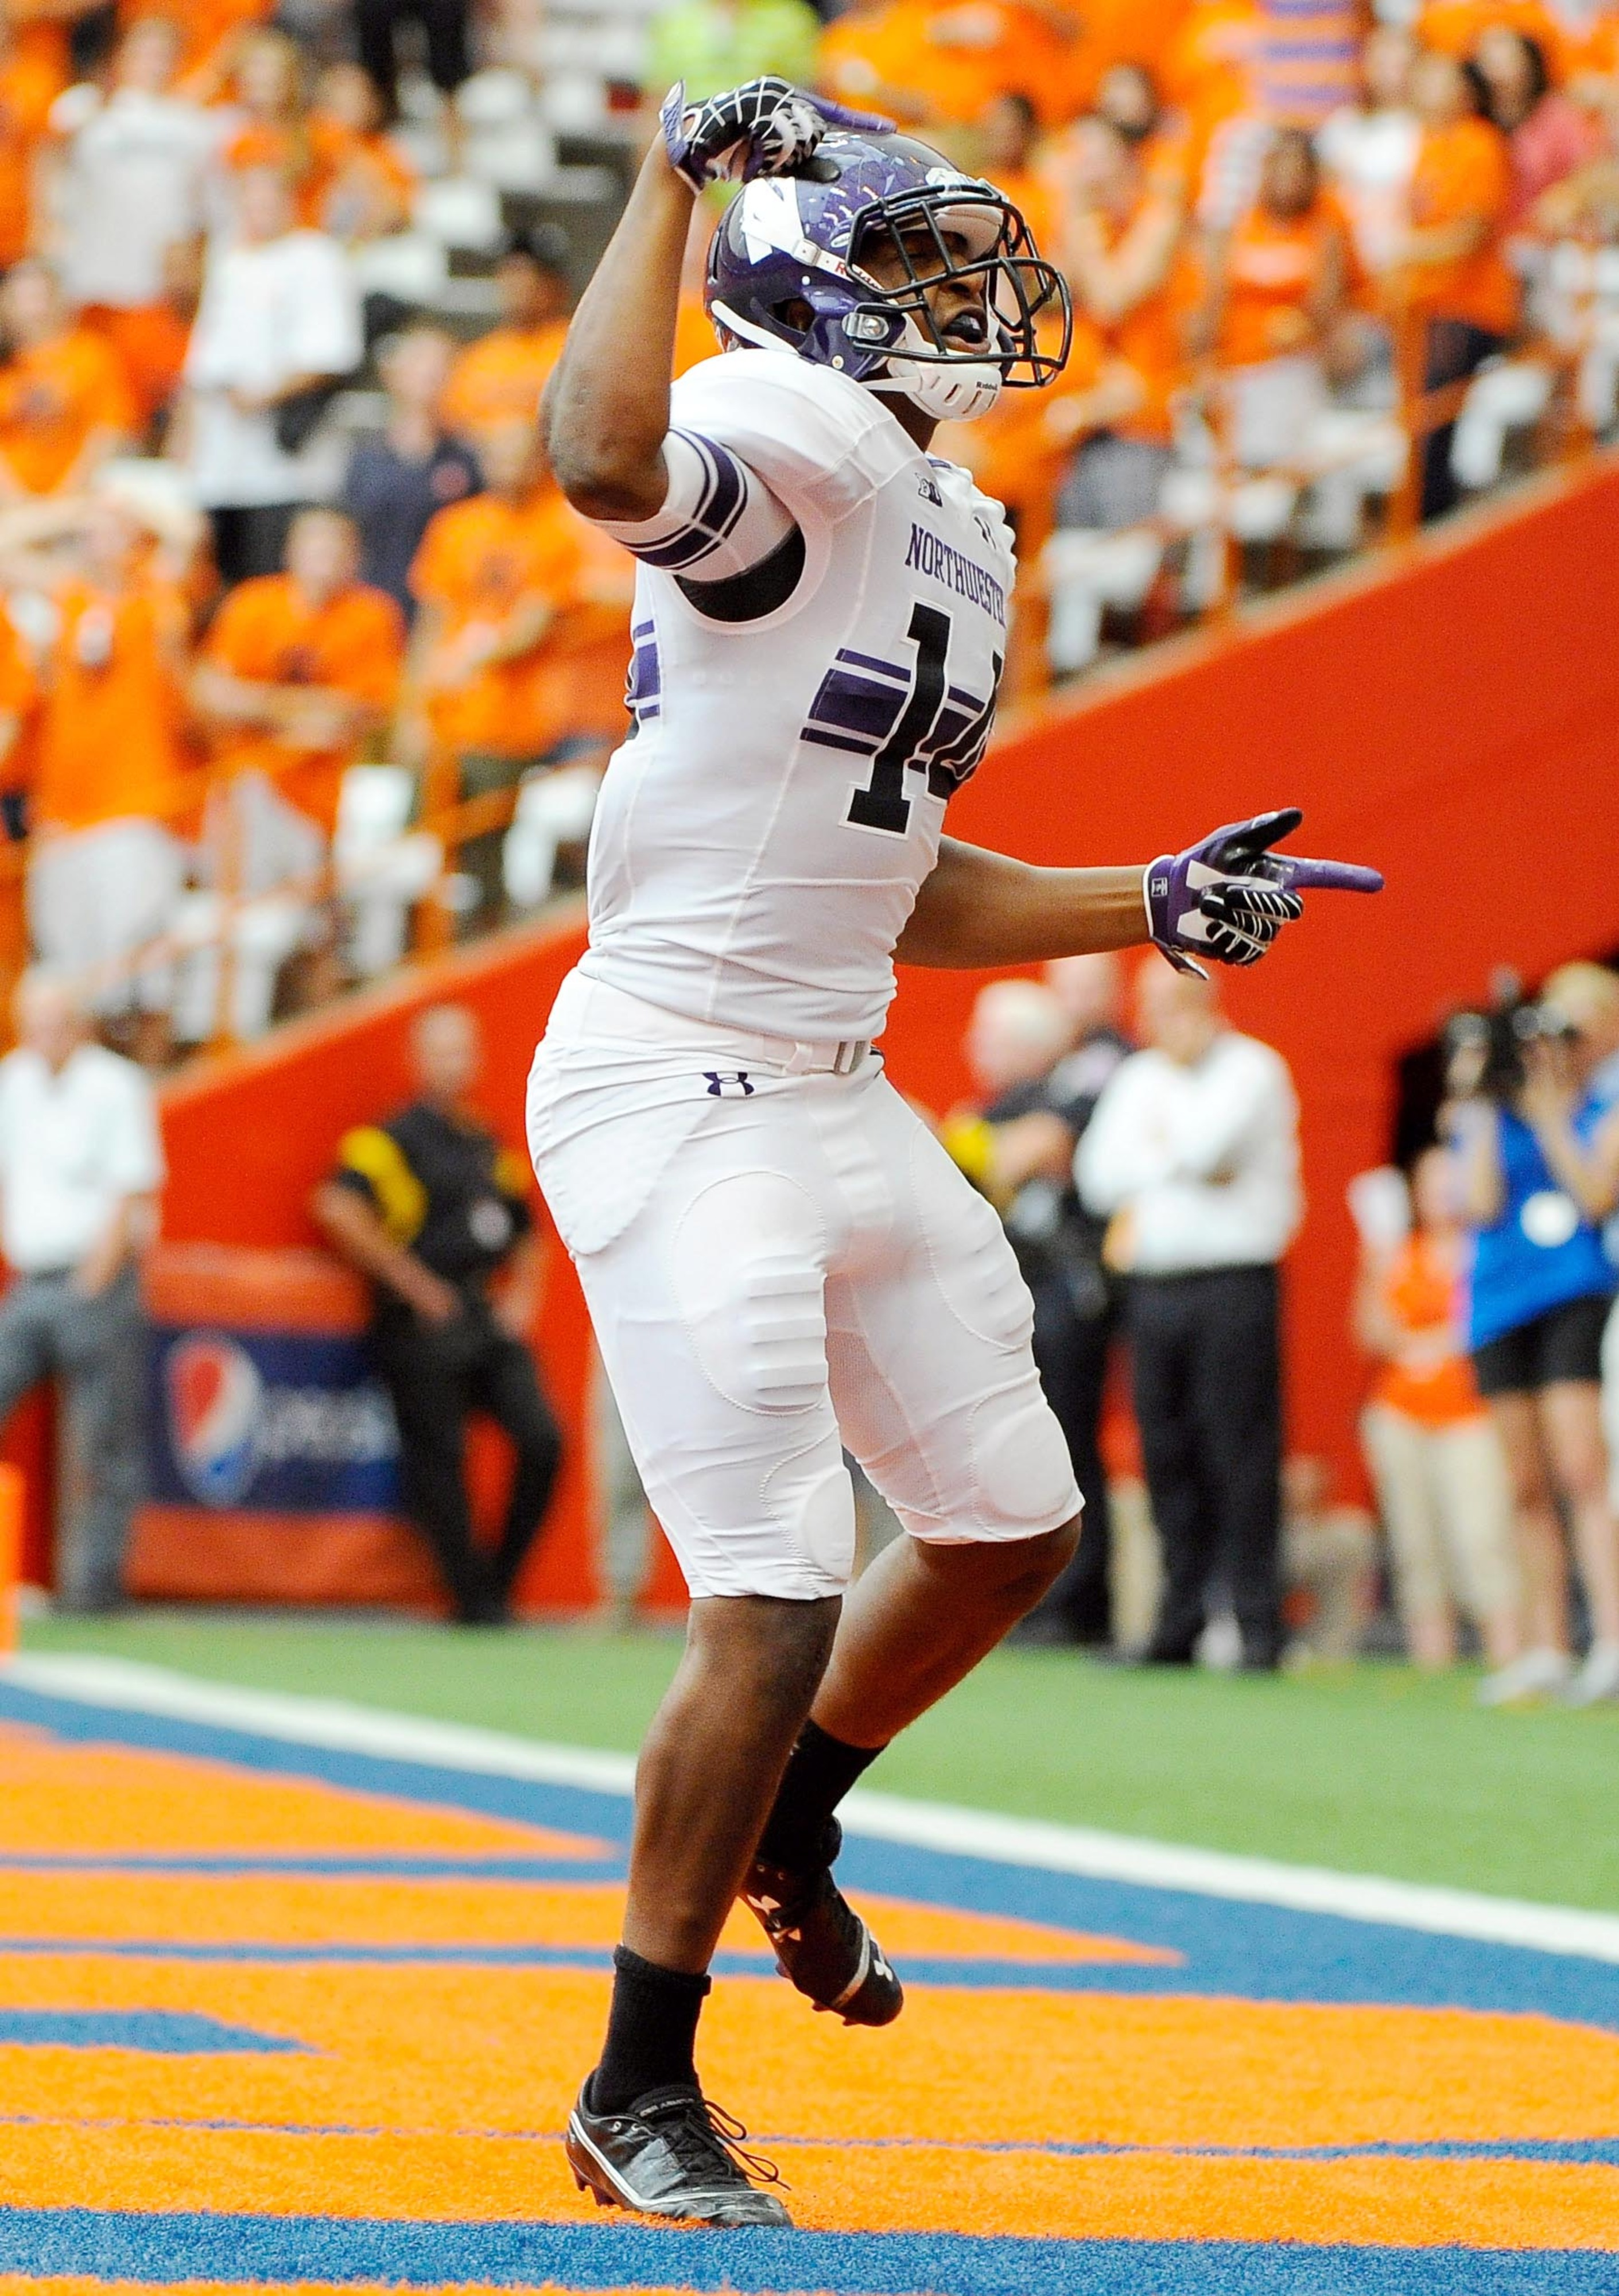 Sep 1, 2012; Syracuse, NY, USA; Northwestern Wildcats wide receiver Christian Jones (14) reacts after scoring a touchdown during the second quarter against the Syracuse Orange at the Carrier Dome. Mandatory Credit: Rich Barnes-US PRESSWIRE